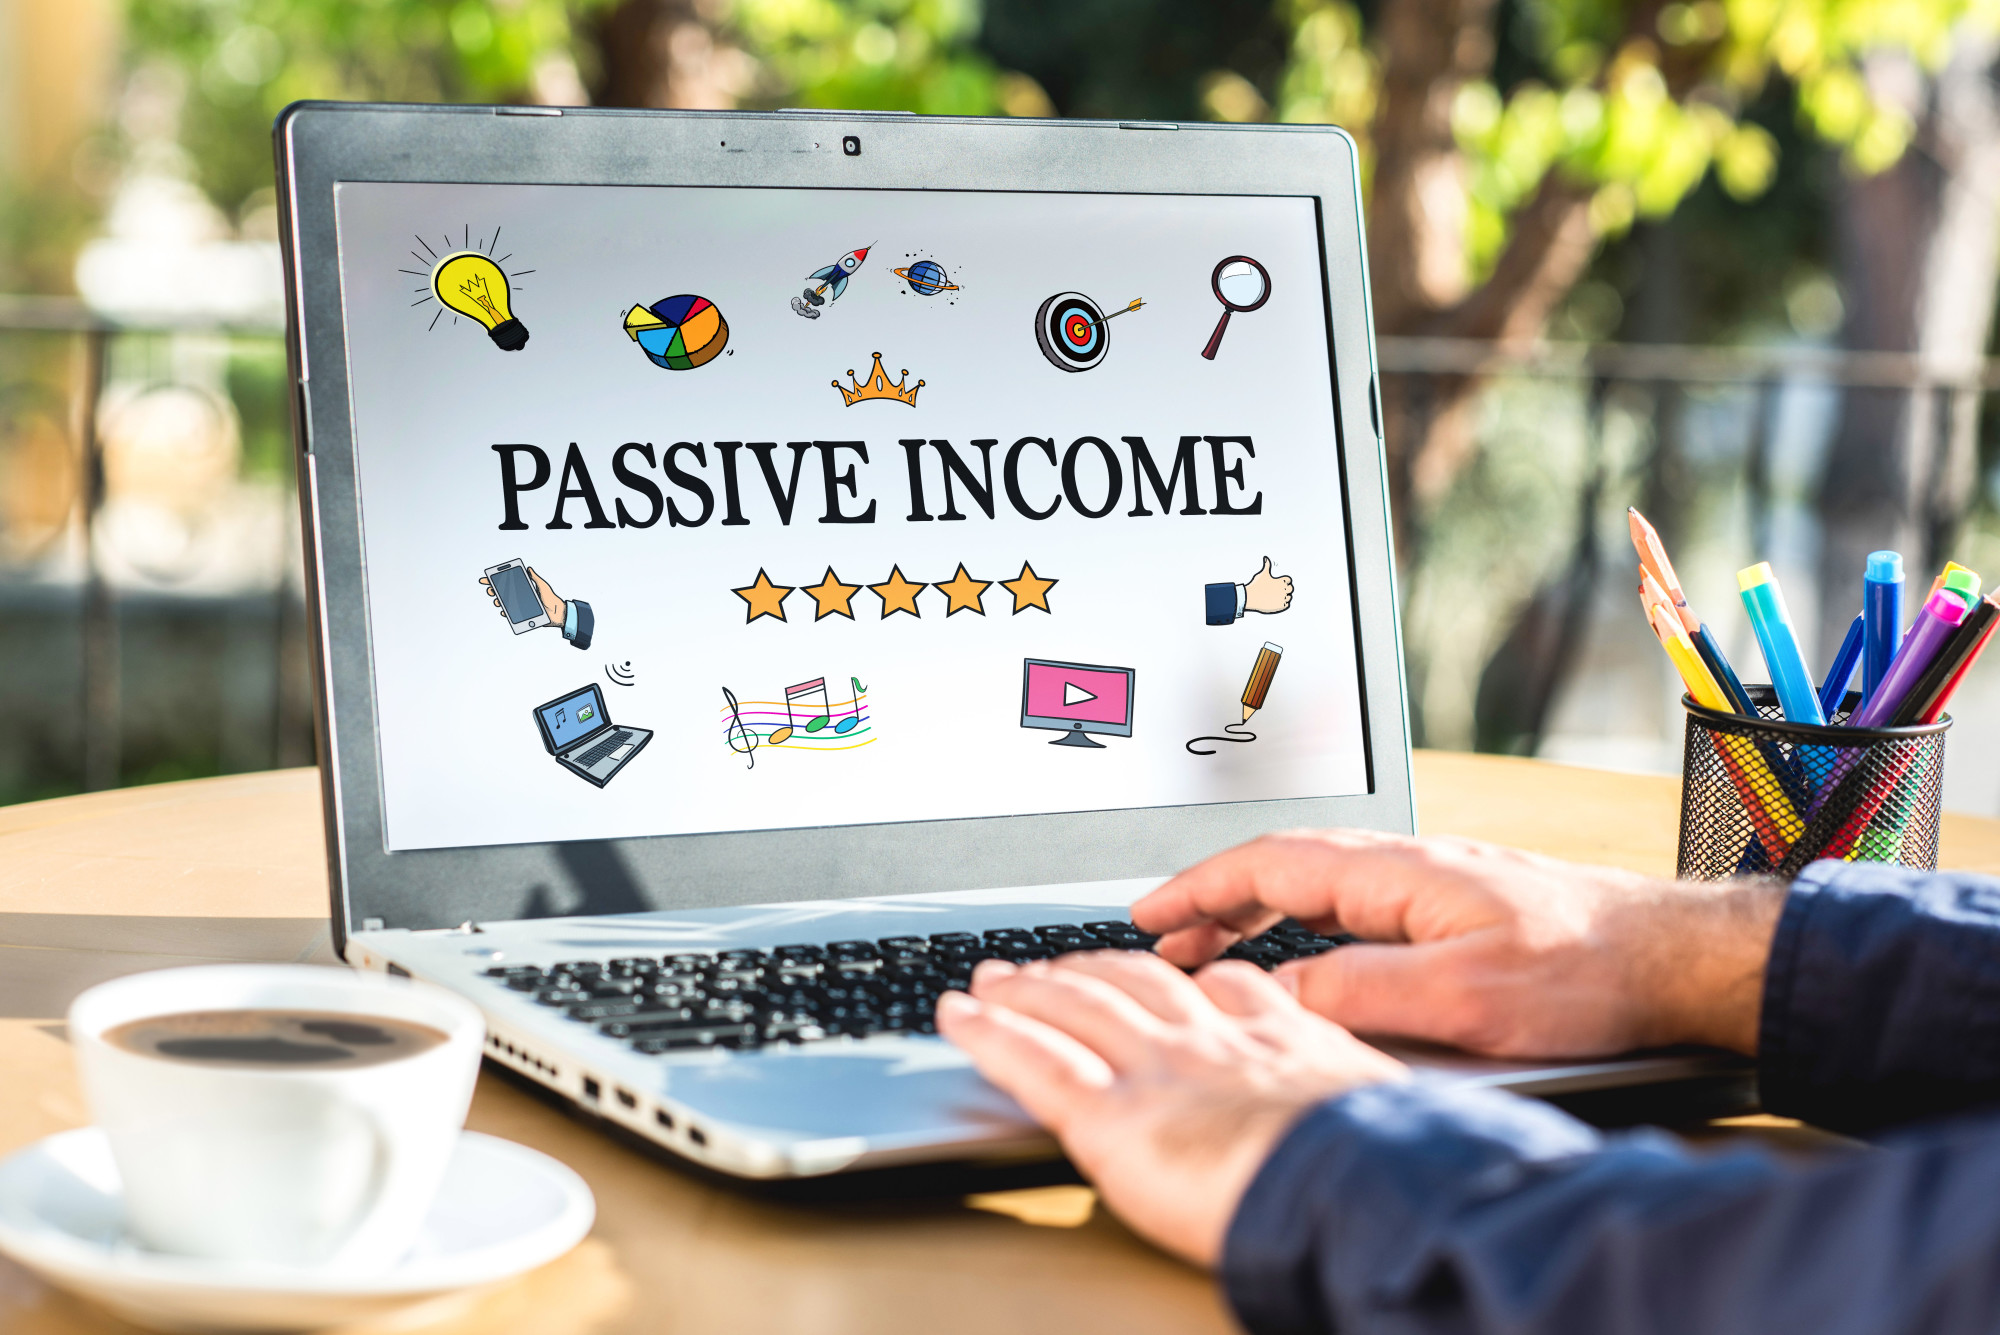 passive income on computer screen